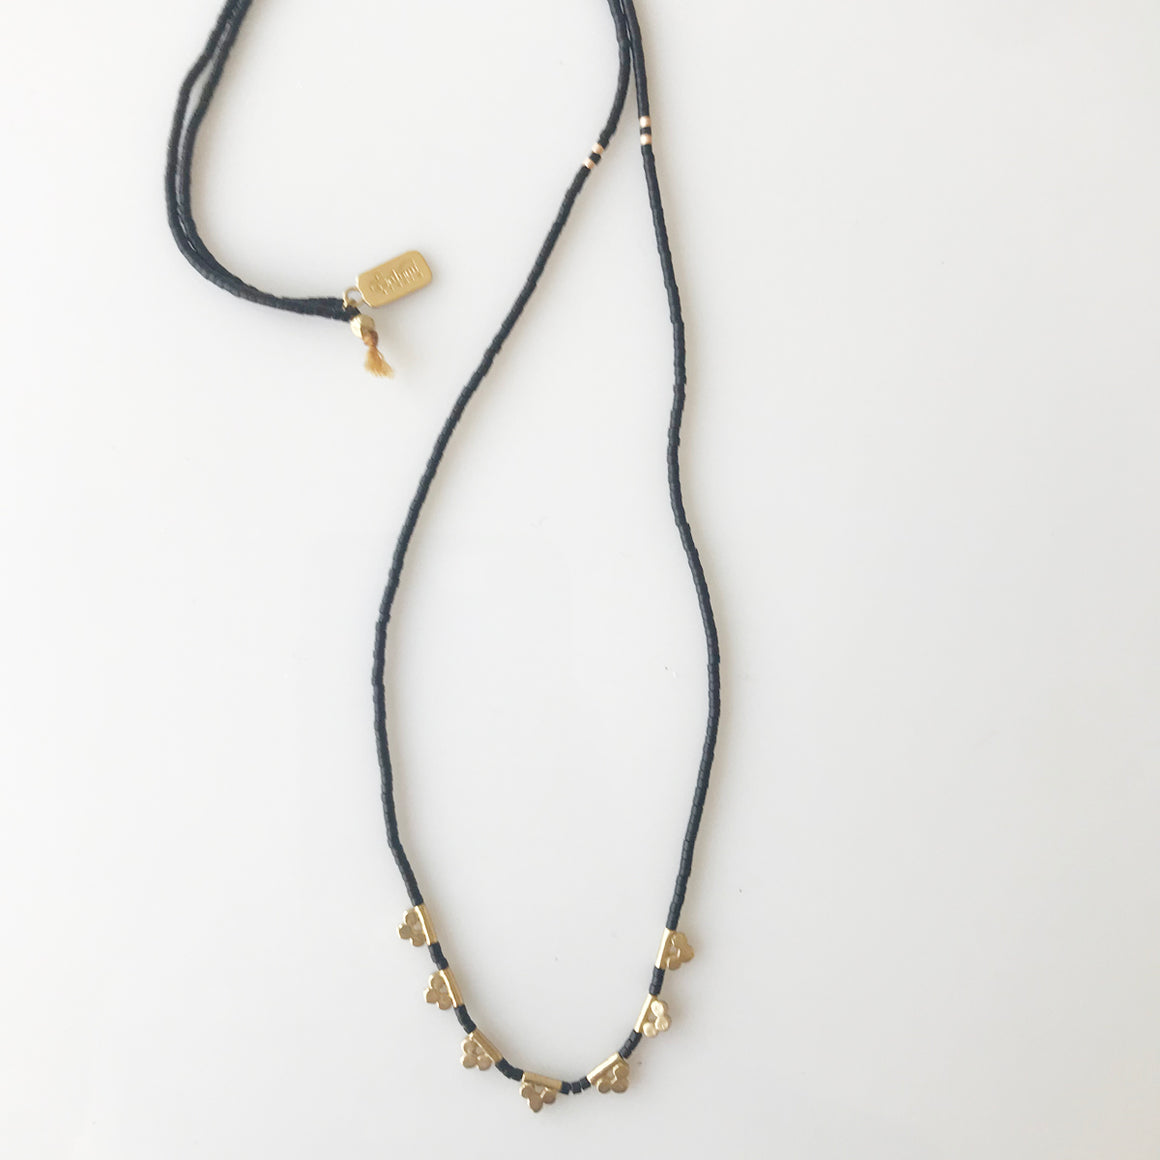 Brass Lucky Loop - 3 Dot necklace - Black - KESTREL